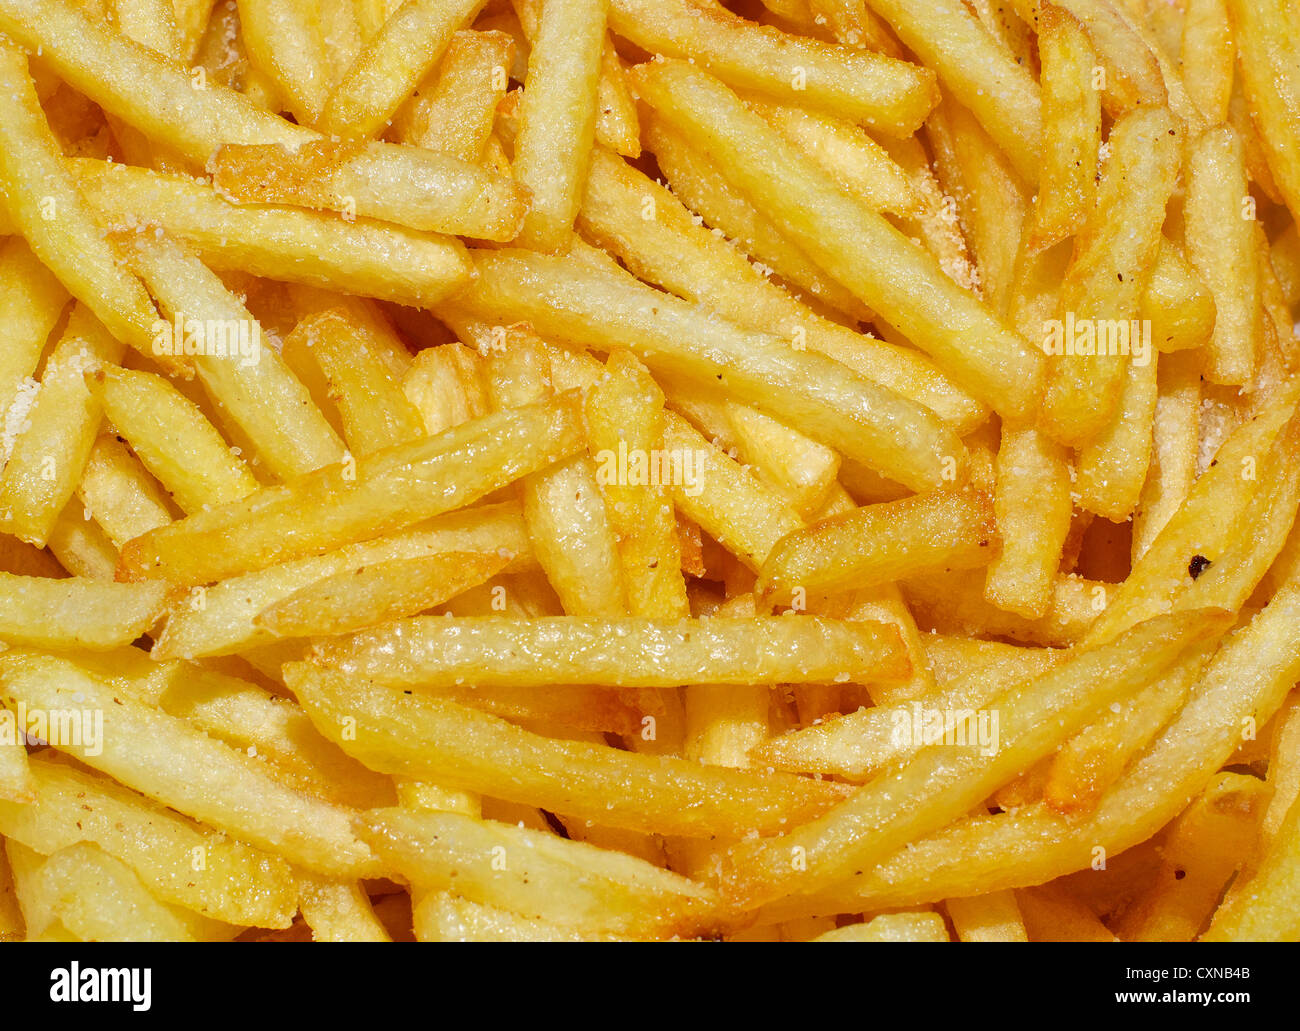 French fries background. - Stock Image